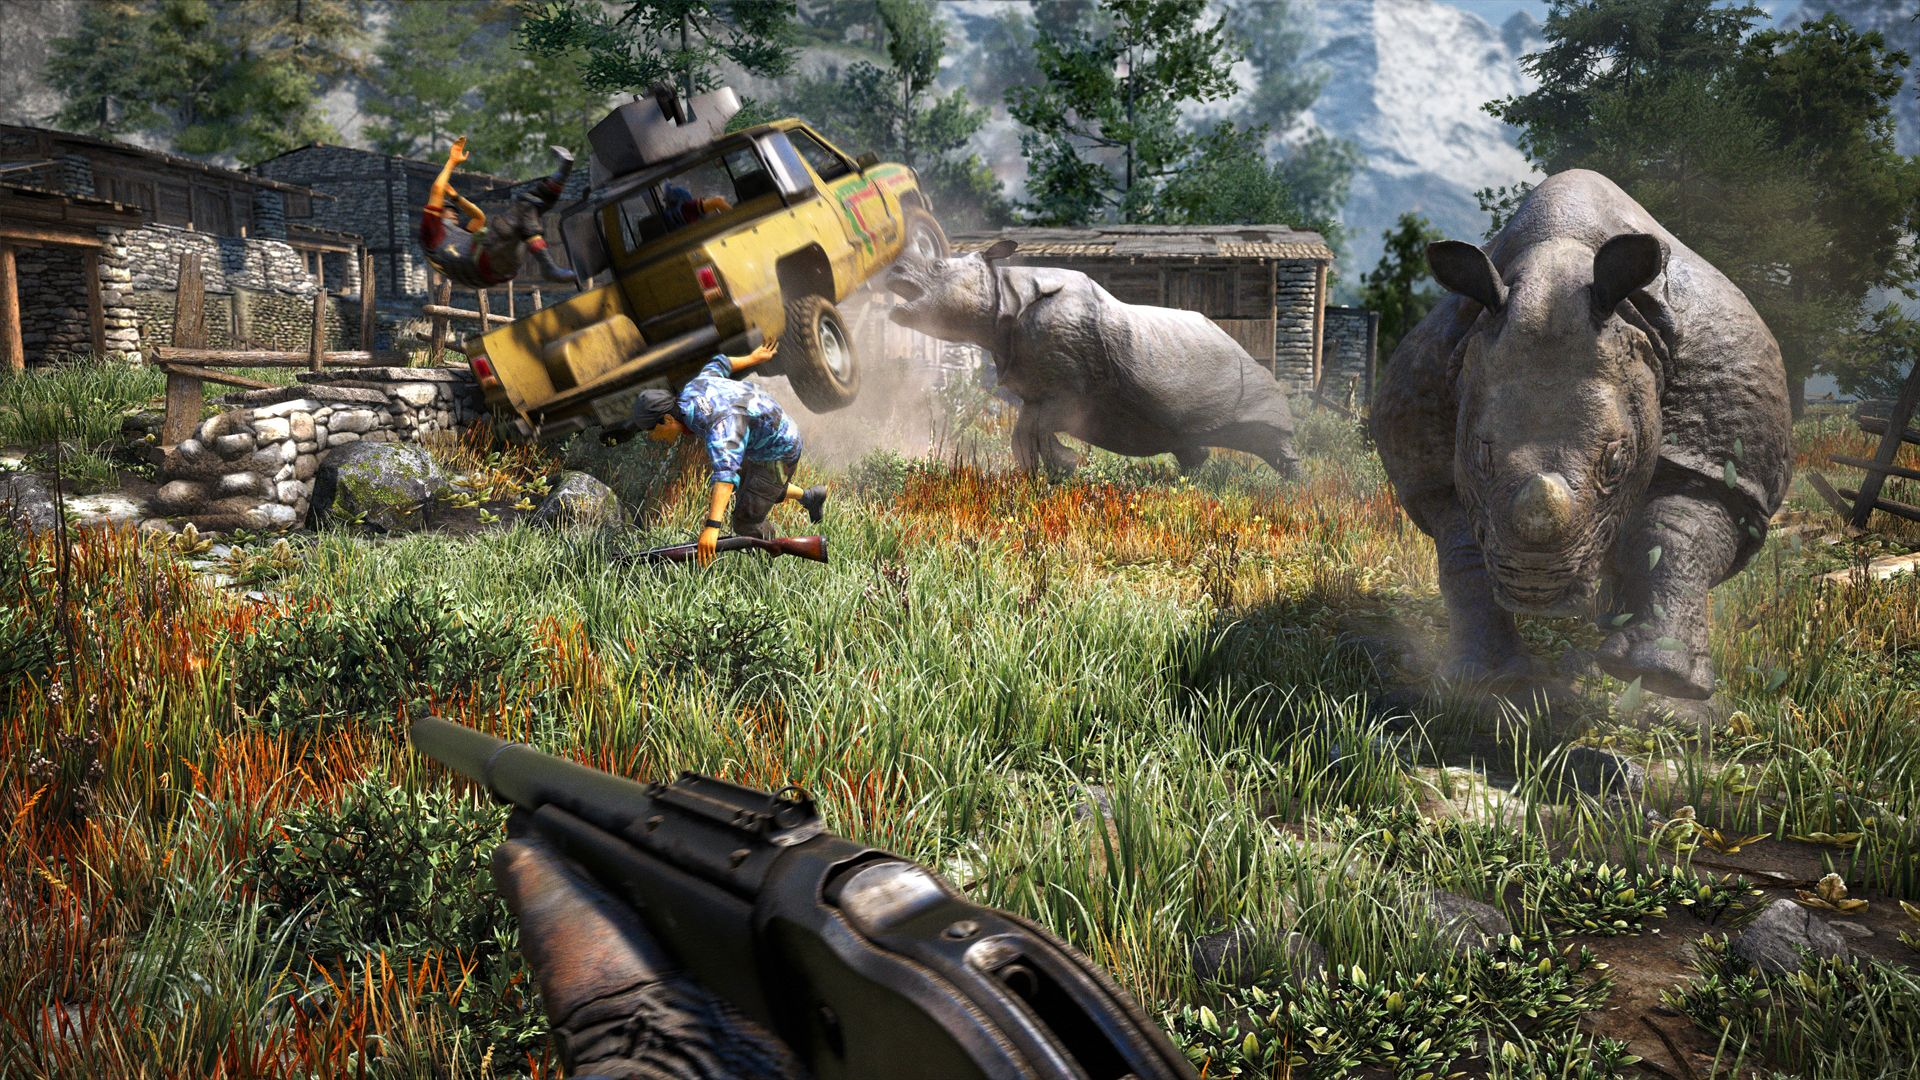 Far Cry 4 Images Gamespot Far Cry 4 Xbox One Video Games